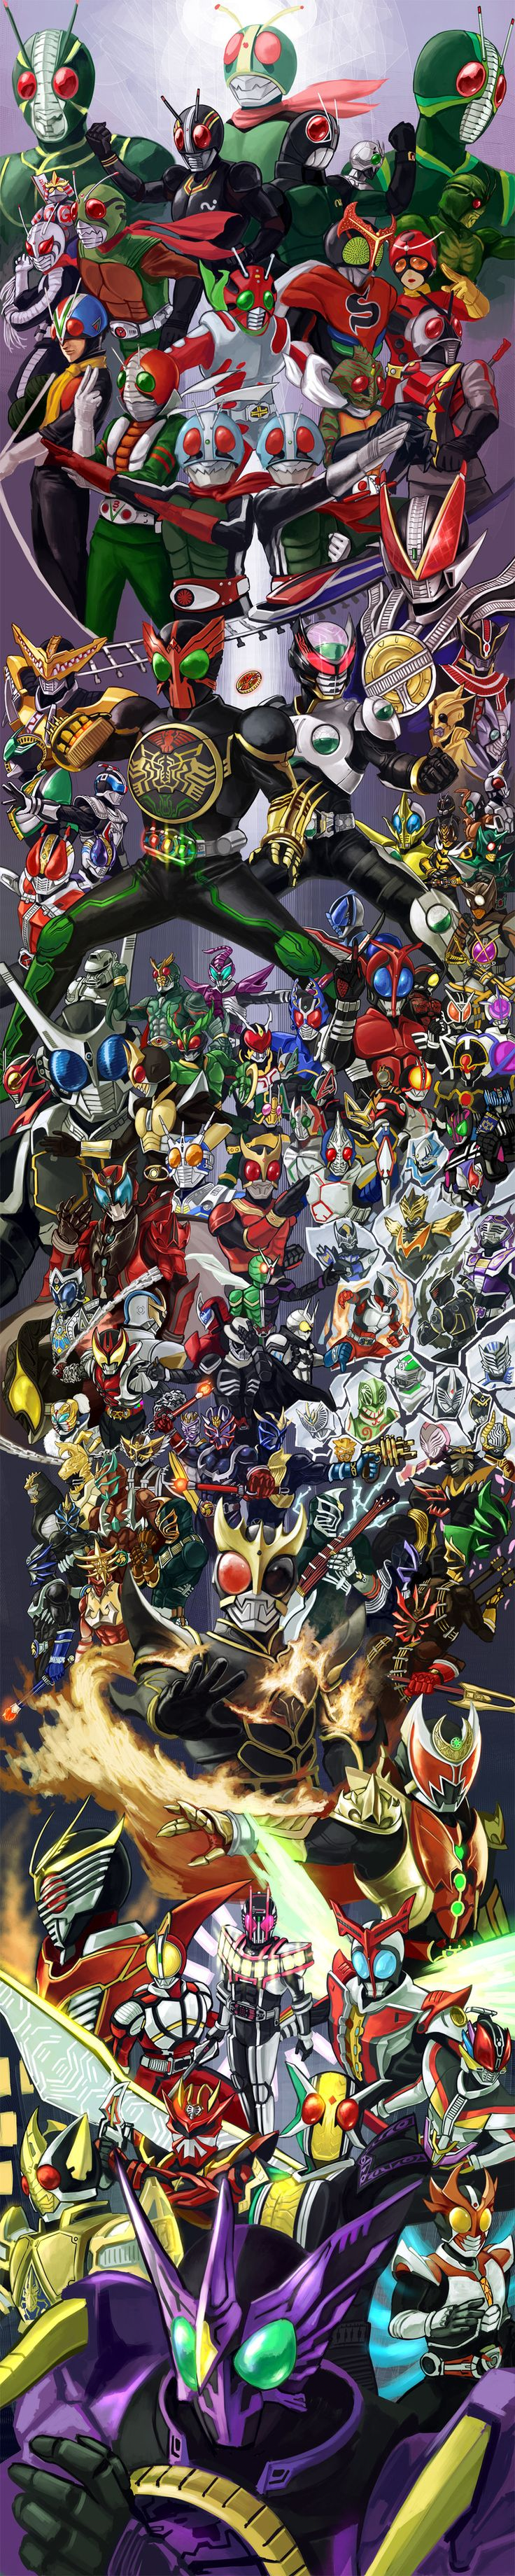 Main Kamen riders and some secondary ones <3 <3 <3